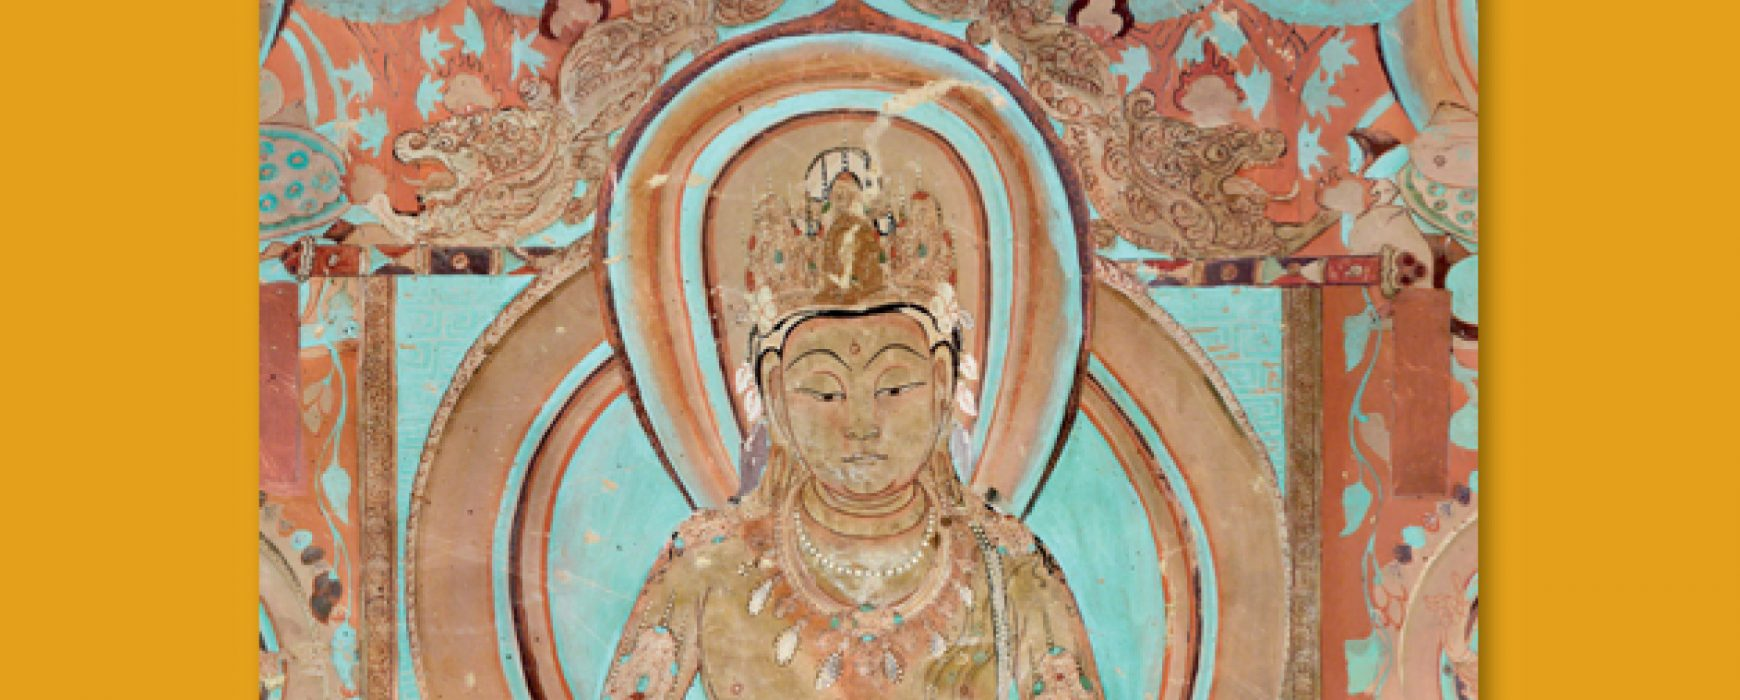 Publication: Maṇḍalas in the Making: The Visual Culture of Esoteric Buddhism at Dunhuang